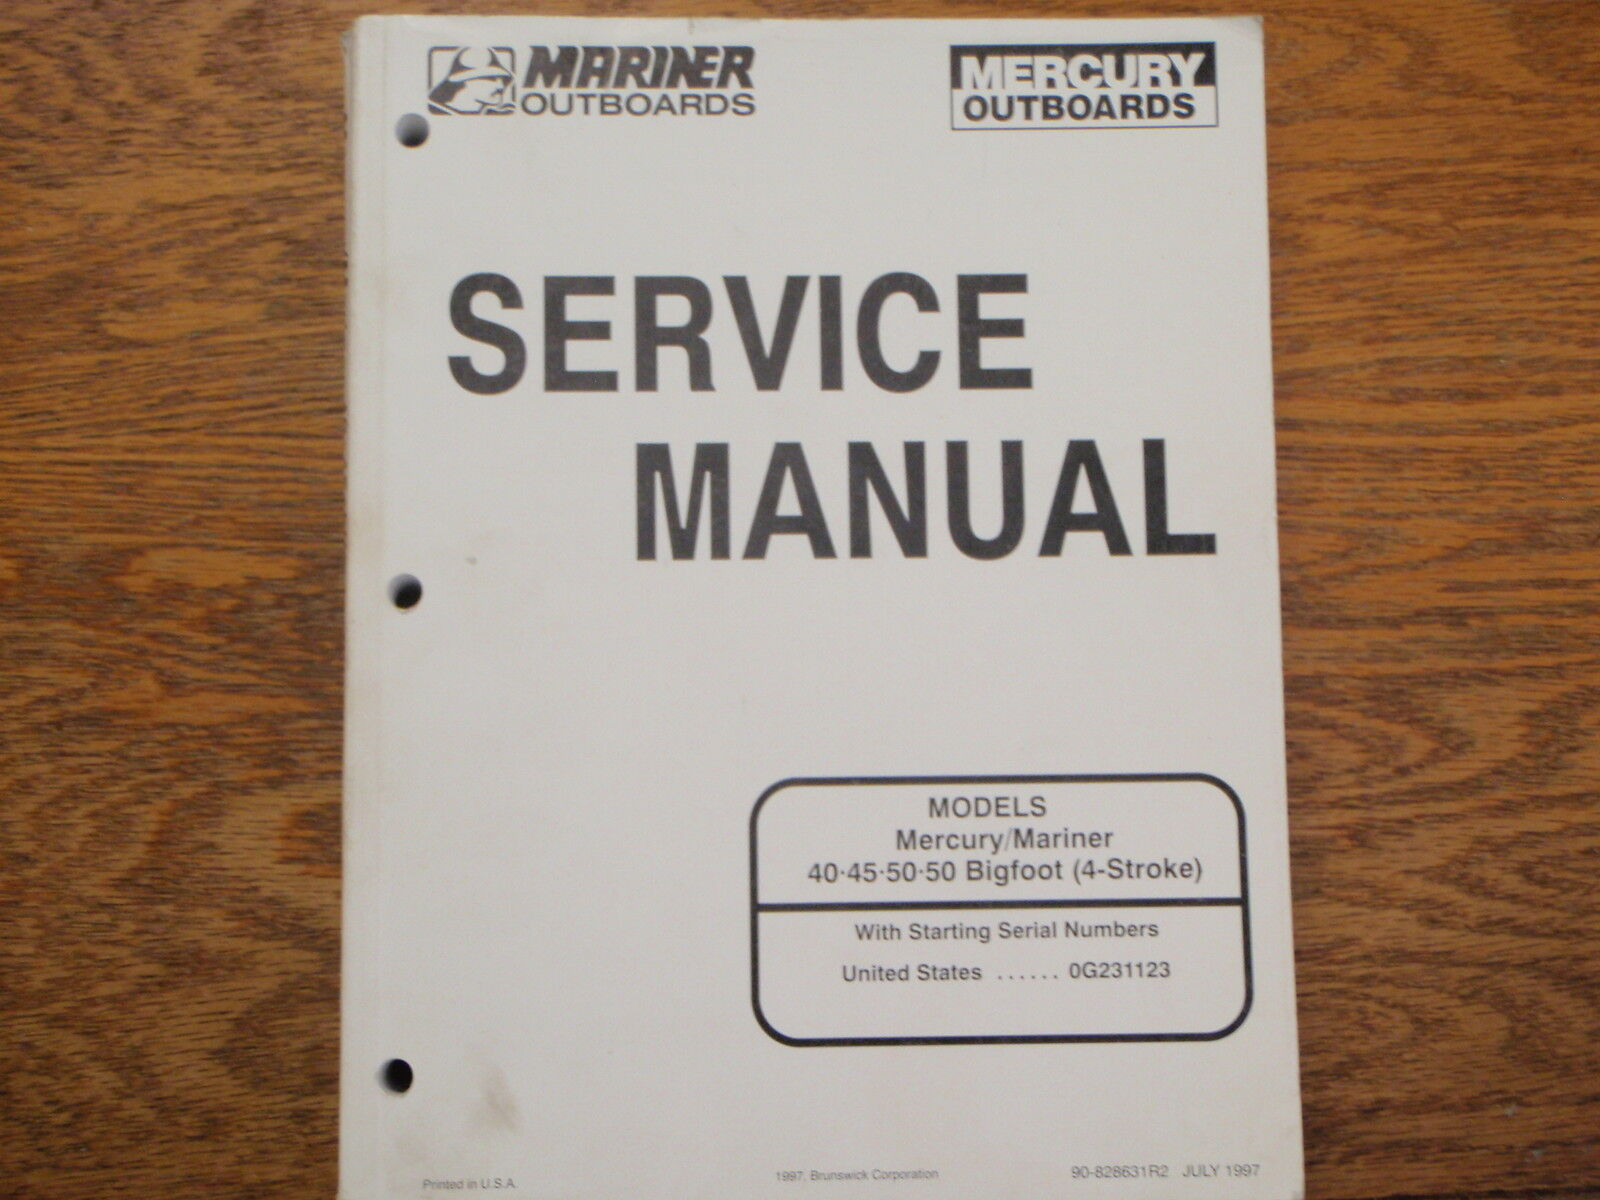 mercury outboard service manual 40 45 50 50hp bigfoot 4 stroke 90 rh picclick com HP Manuals PDF HP Manuals PDF